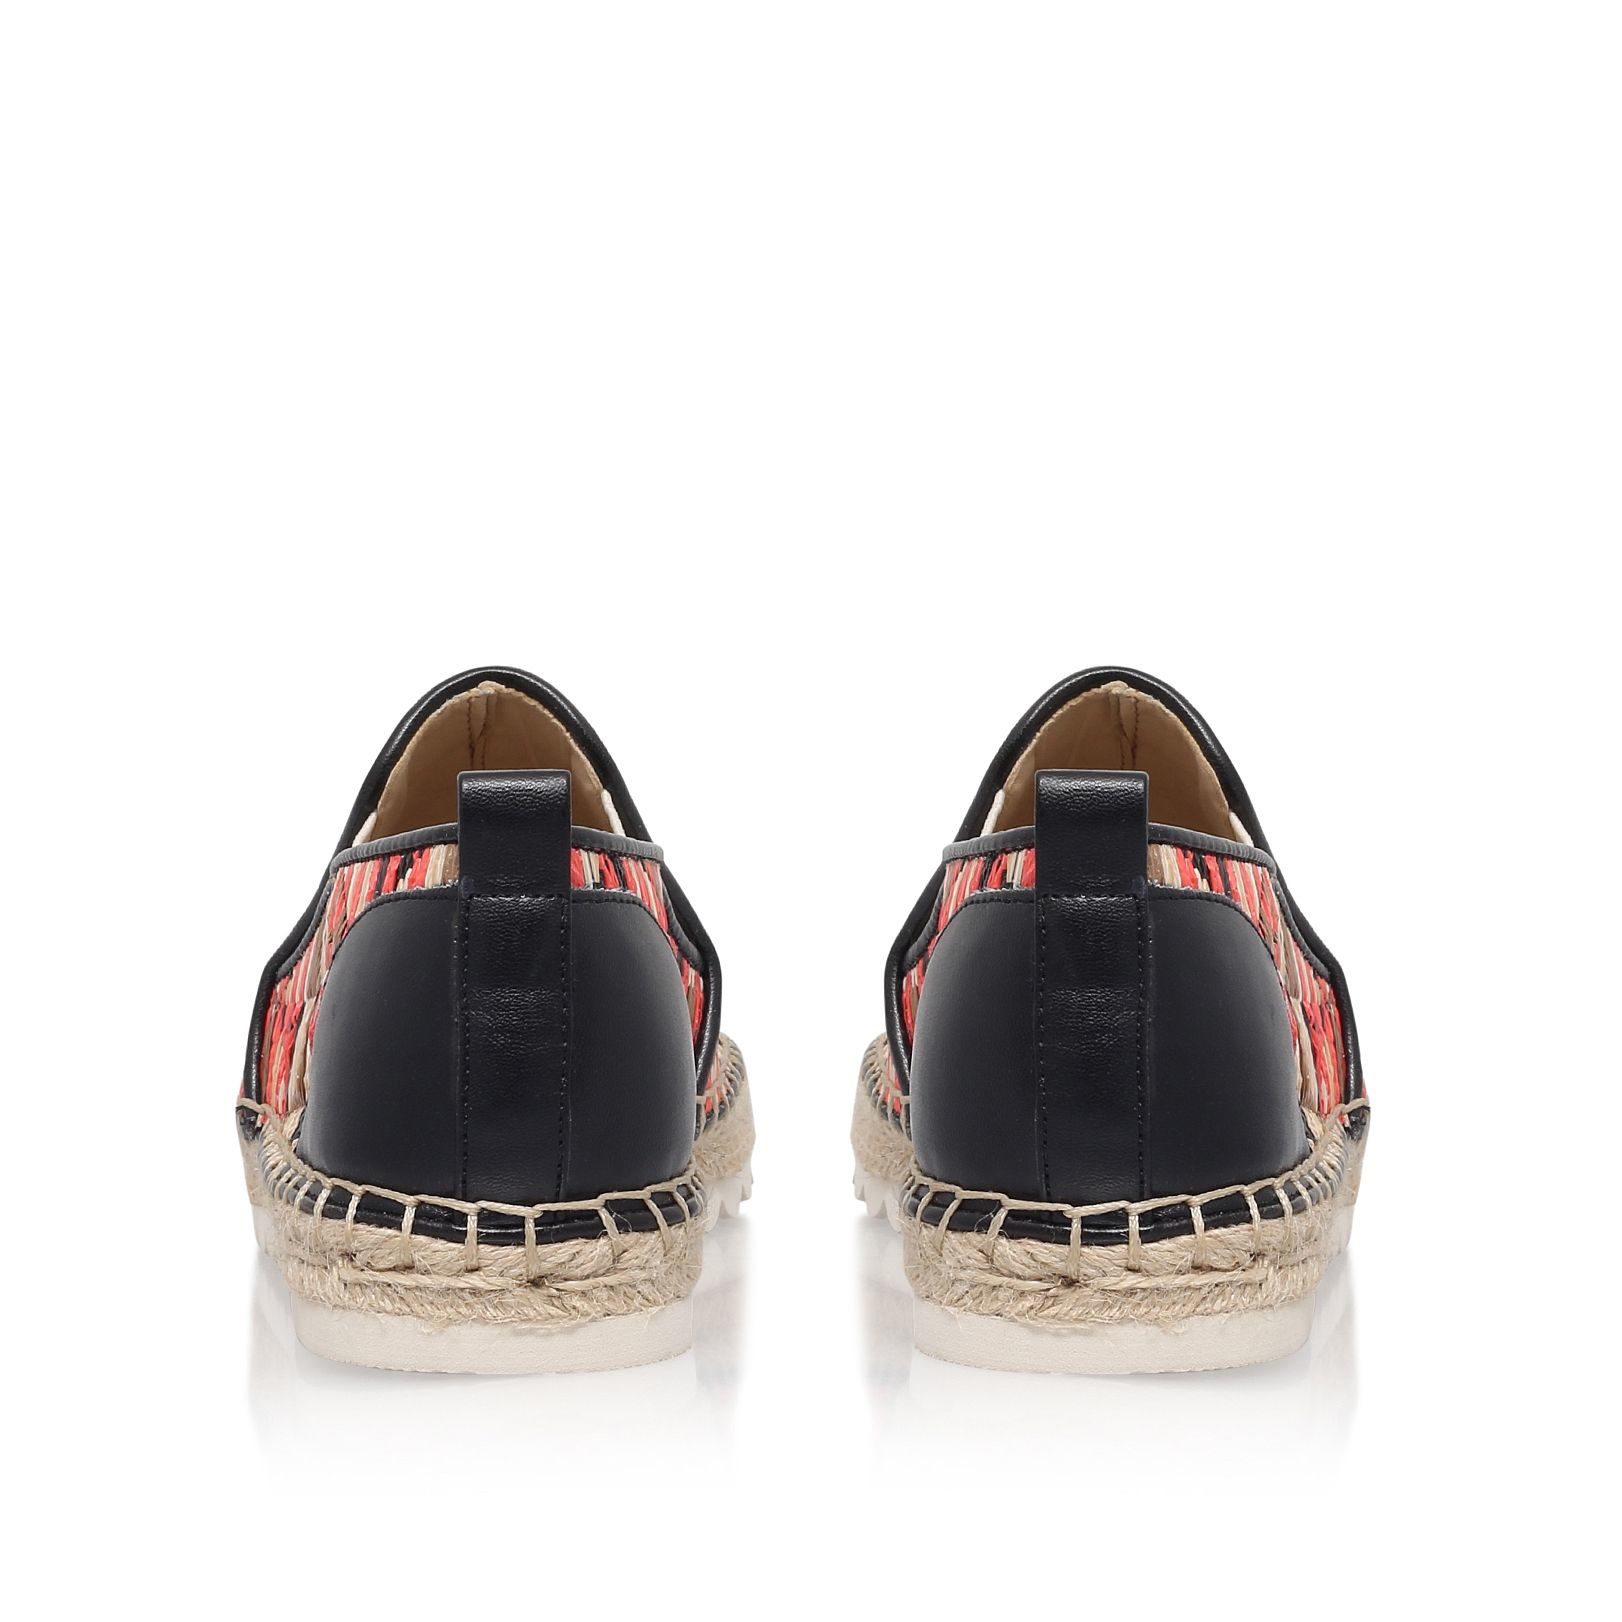 Nine West Synthetic Noney2 Flat Espadrille Sneakers in Black